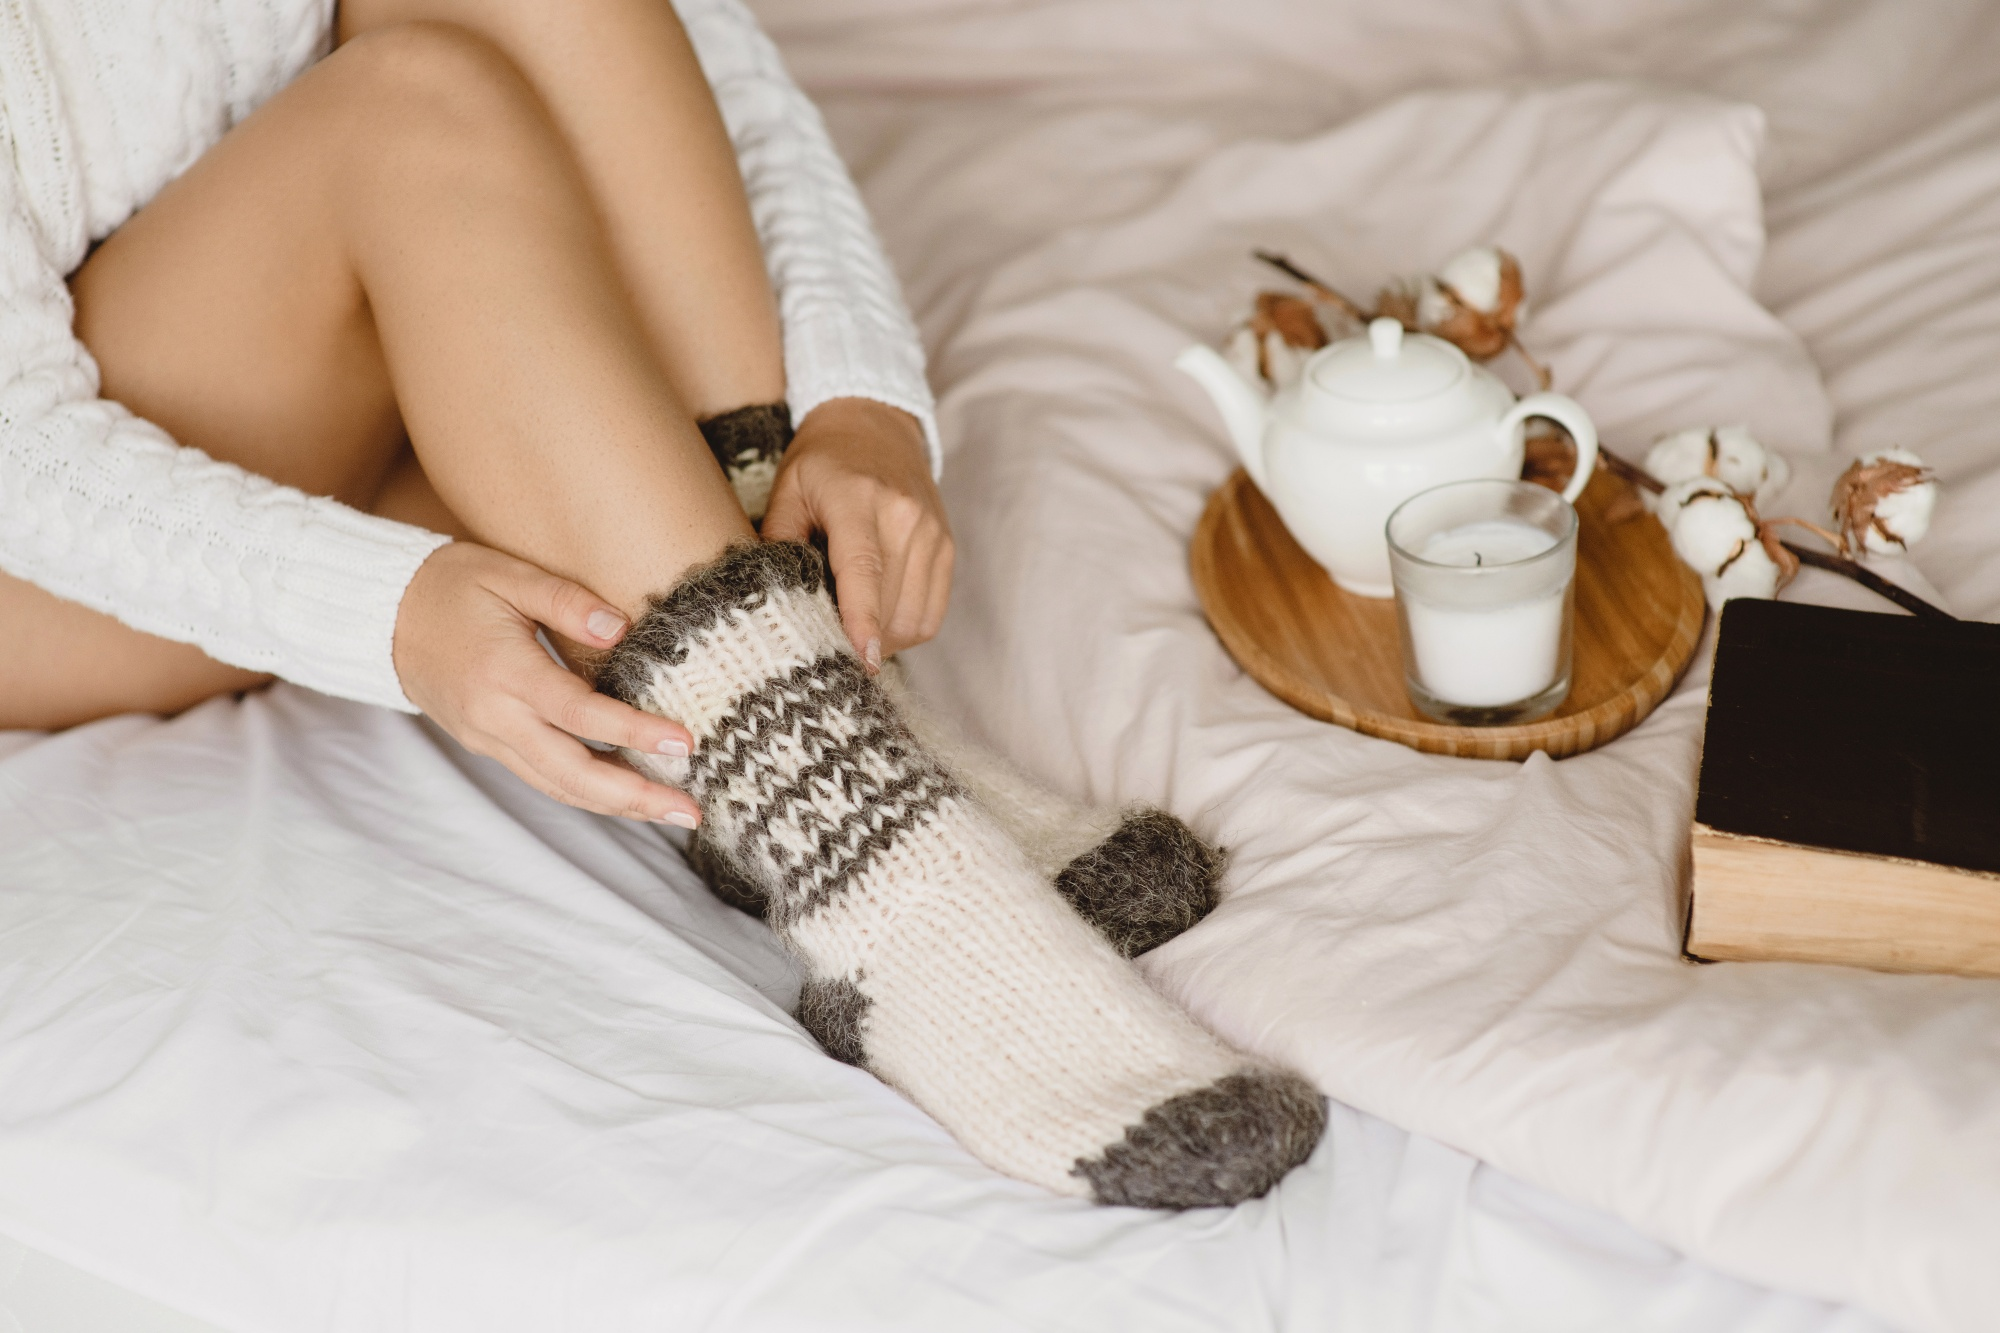 finding hygge at home, sharing how to stay-cozy and content-at-home-with-a-book-tea-and-warm-socks